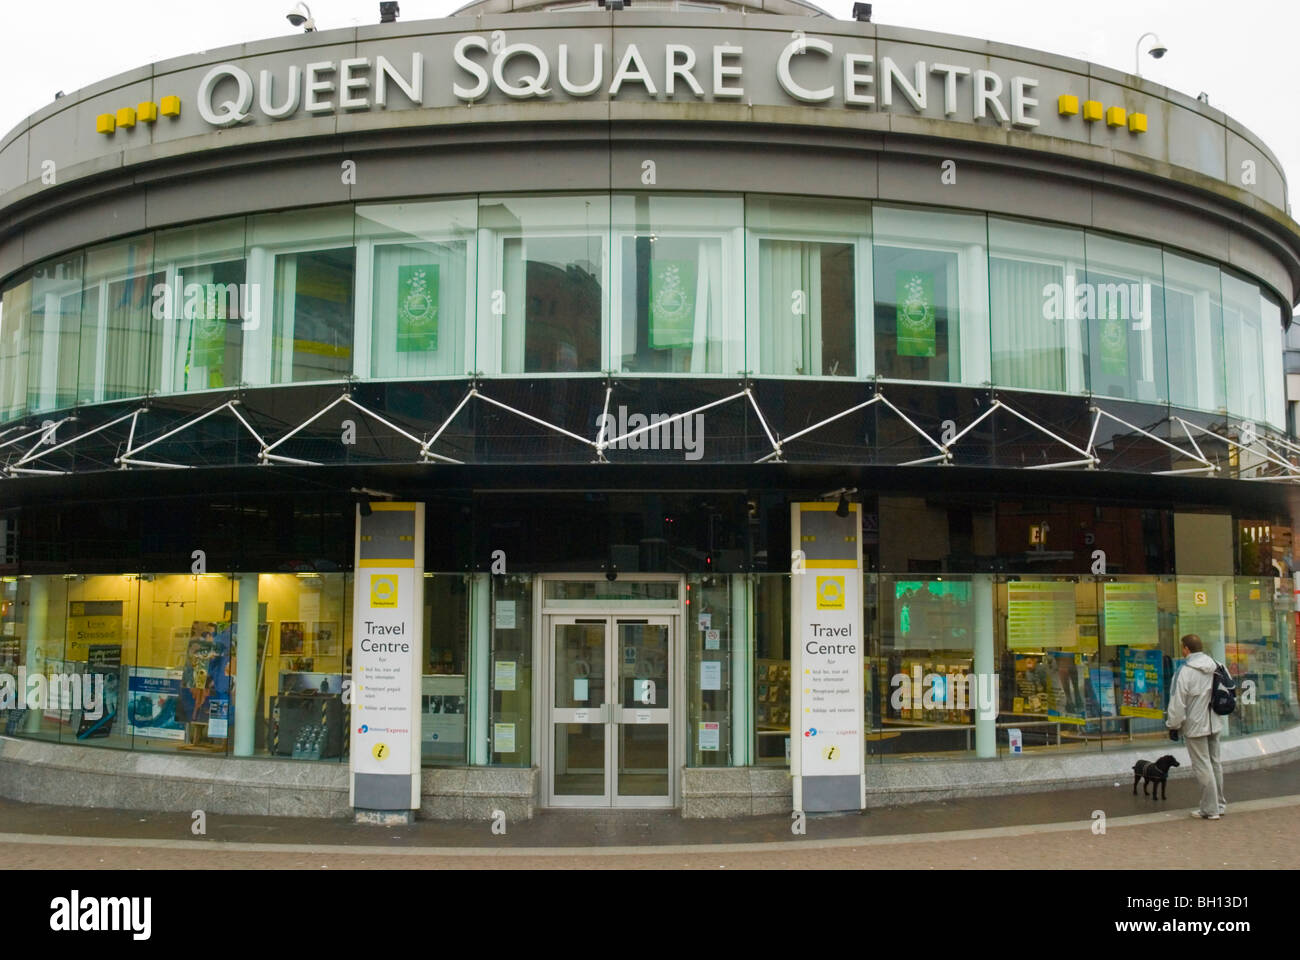 Queen Square Centre the travel information and ticket point in Liverpool England UK Europe - Stock Image